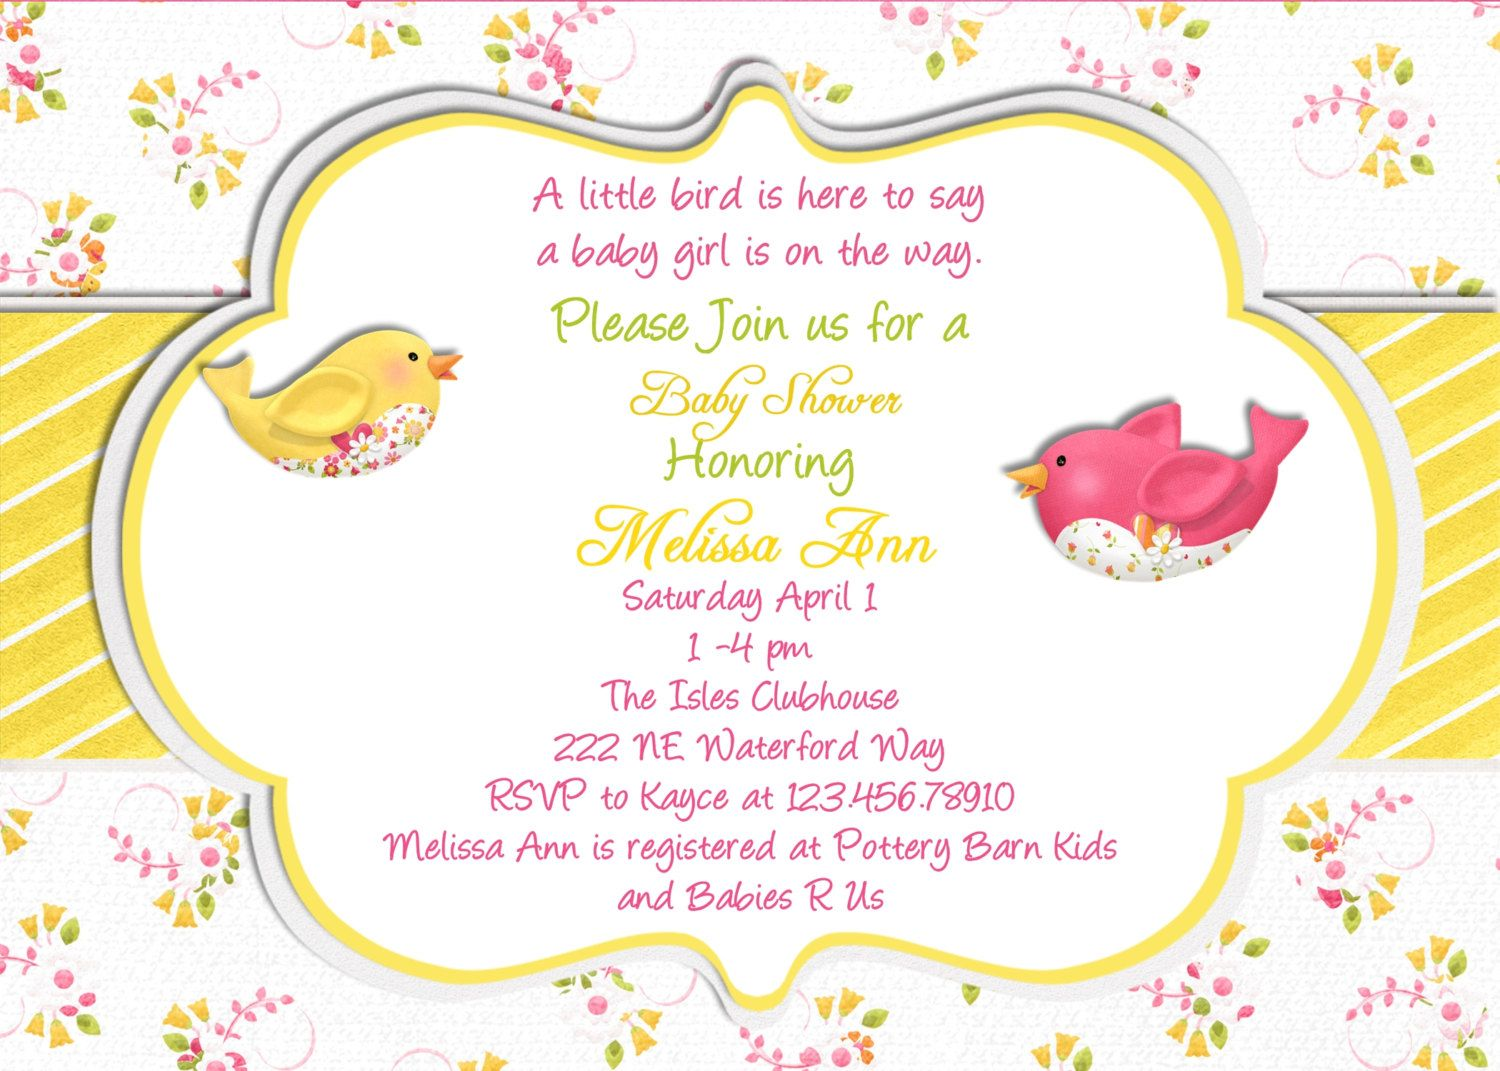 pretty adorable | Em\'s baby shower | Pinterest | Shower invitations ...